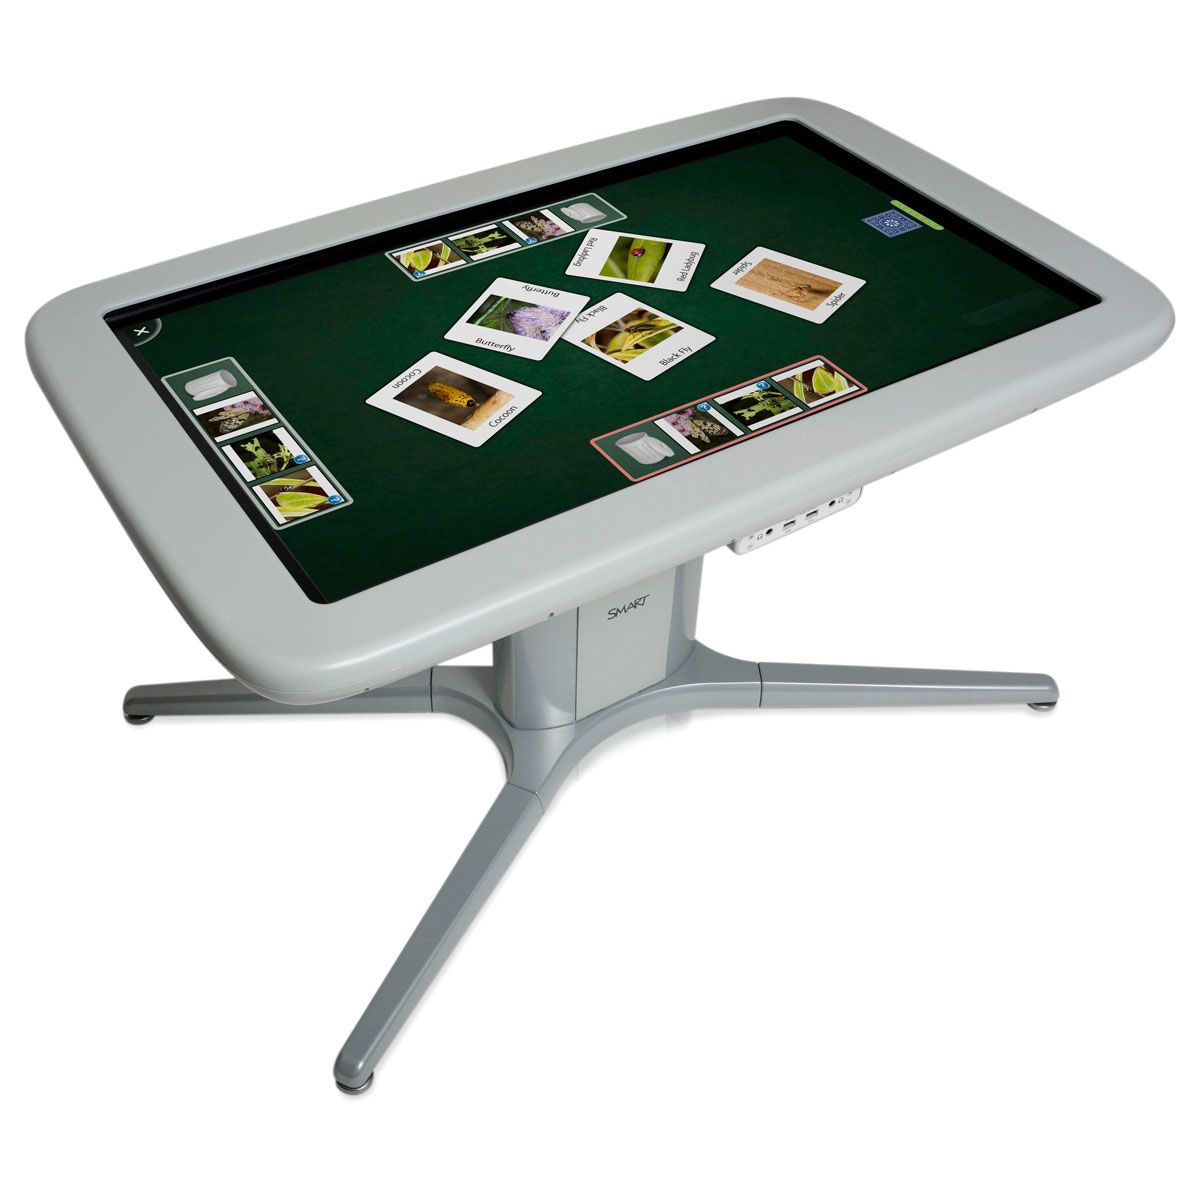 smart table 442i collaborative learning centre st442i primary ict